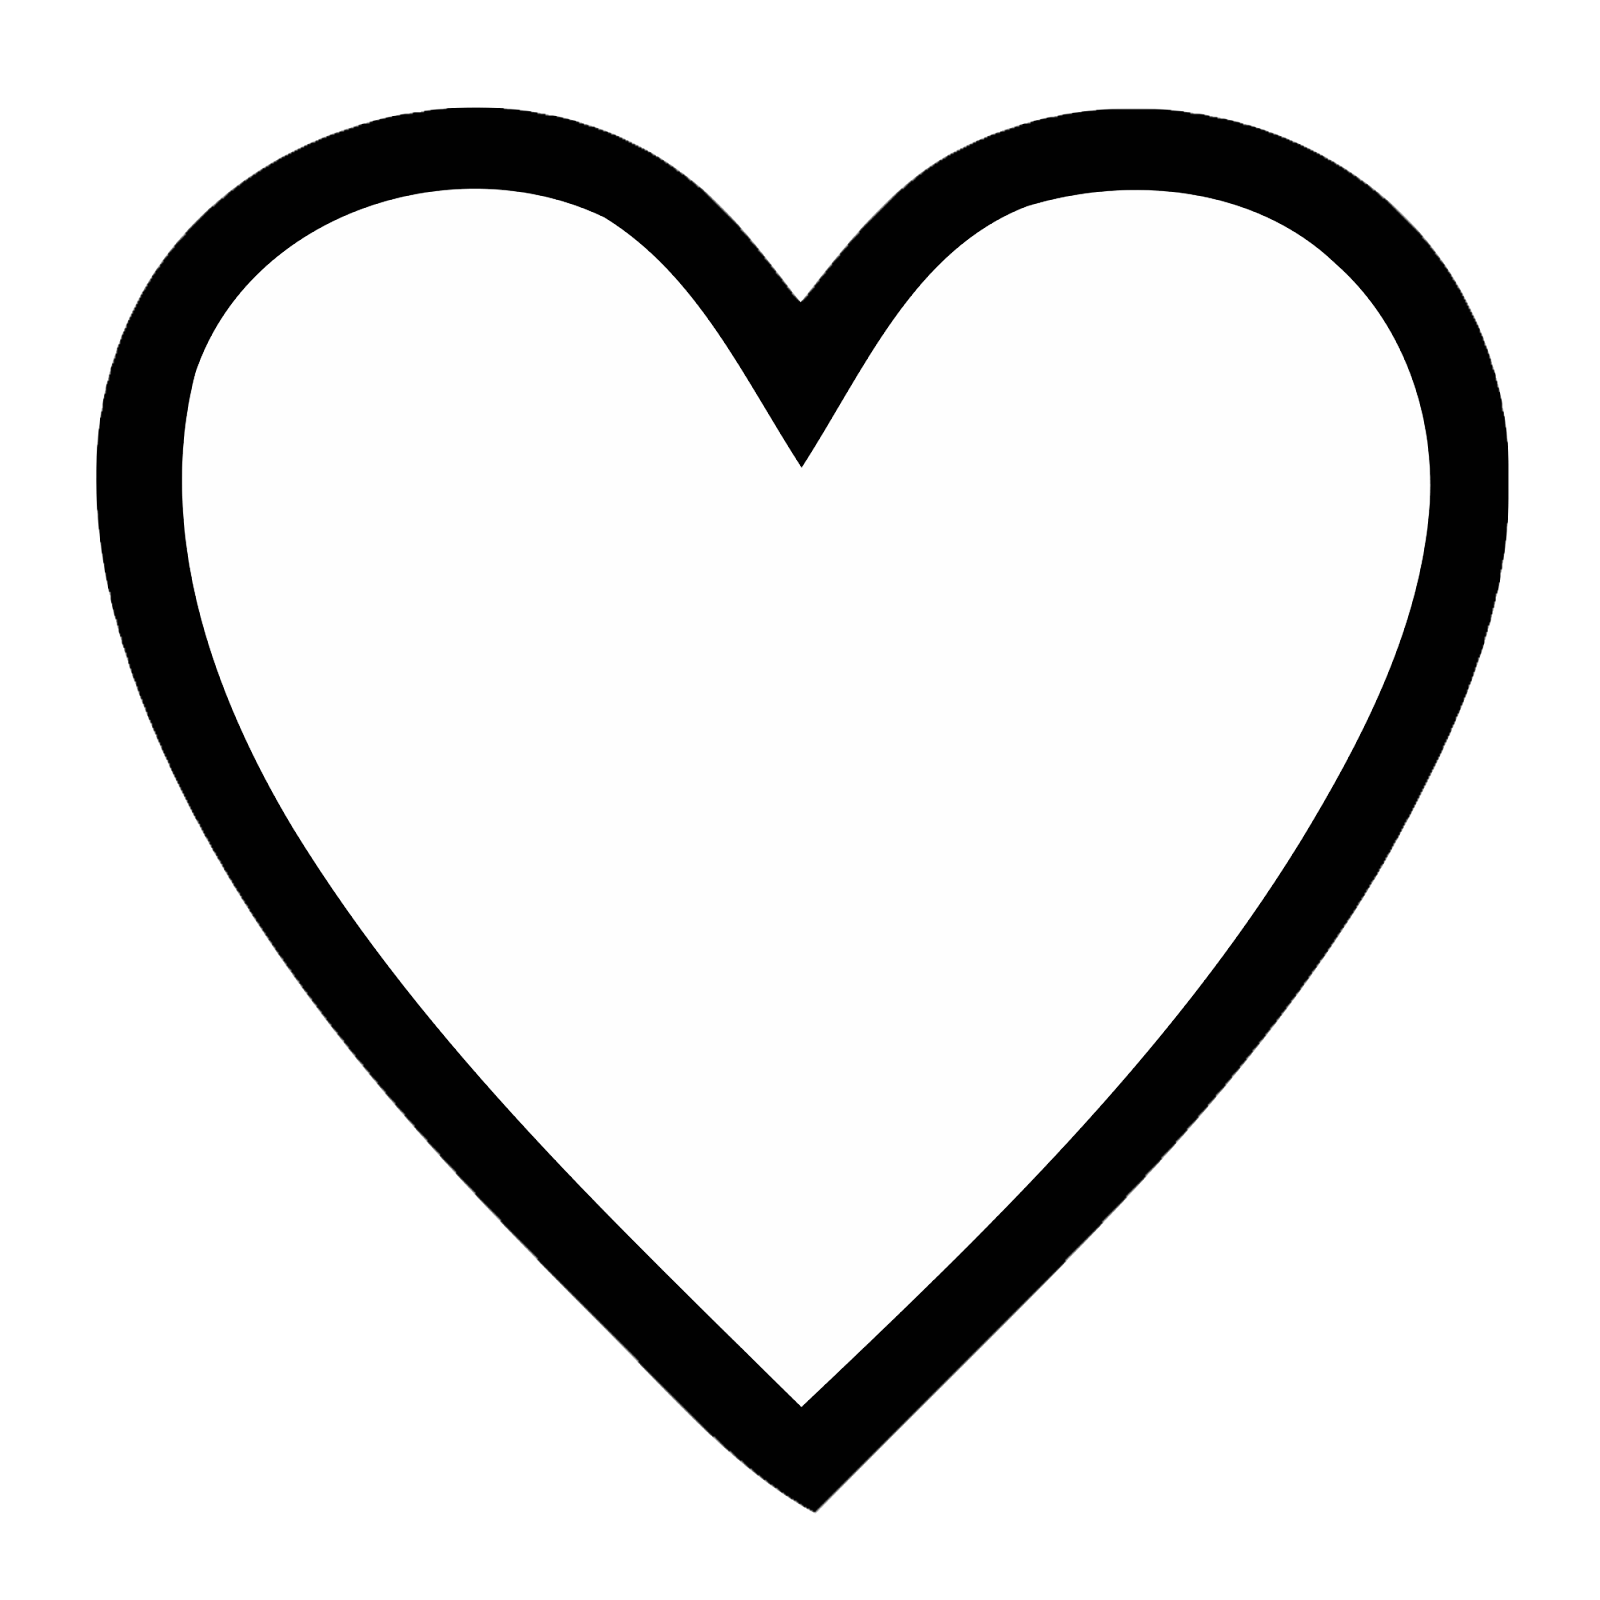 Open heart clipart free download best open heart clipart on 1600x1600 drawing clipart heart buycottarizona